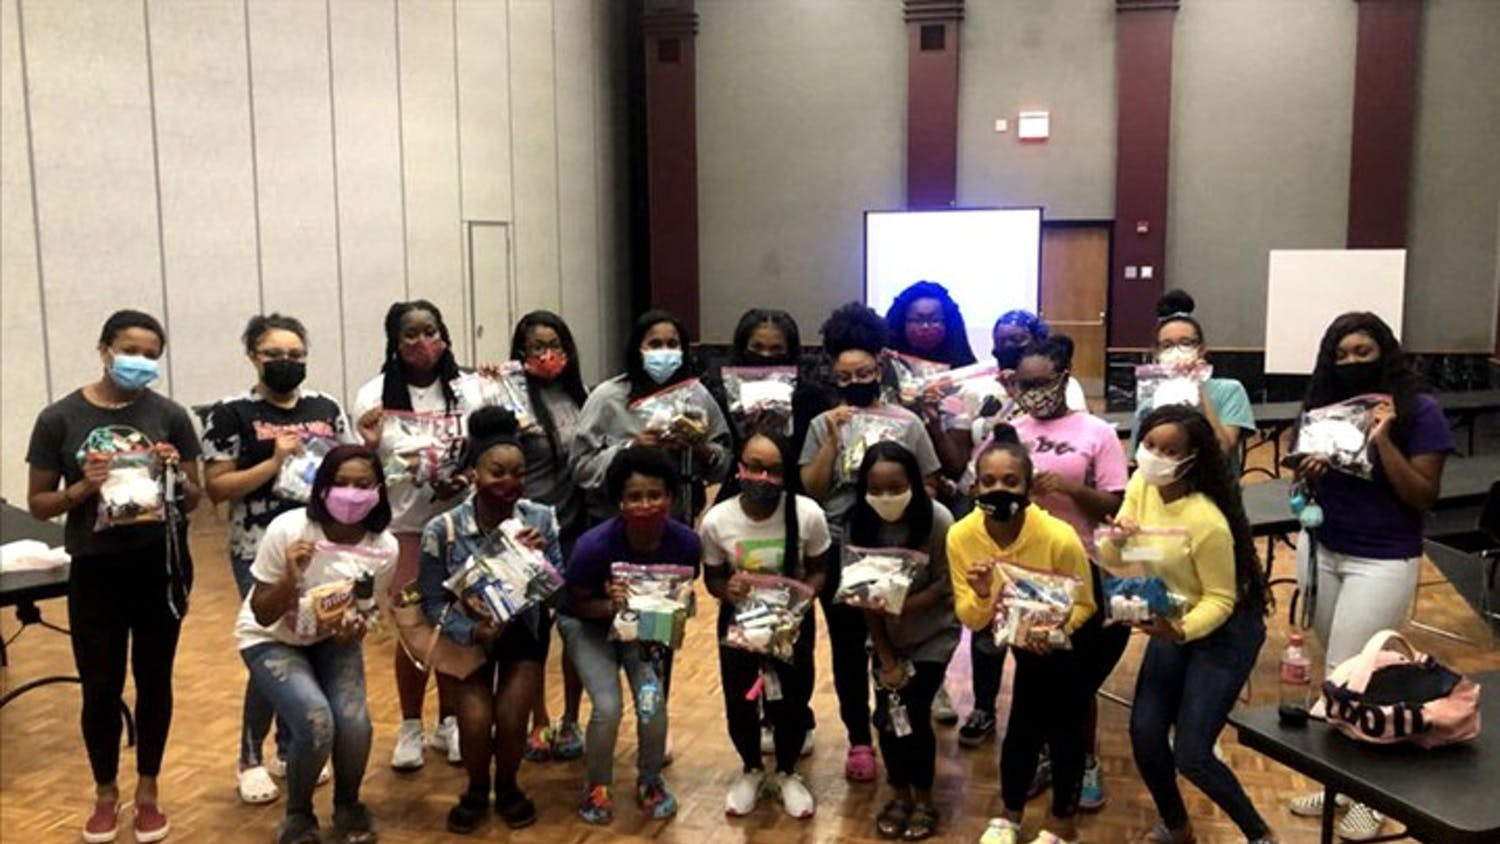 Members of SAVVY partner with Locked with Luv's breast cancer awareness event. The all-female multicultural organization provides many community service events throughout the year.